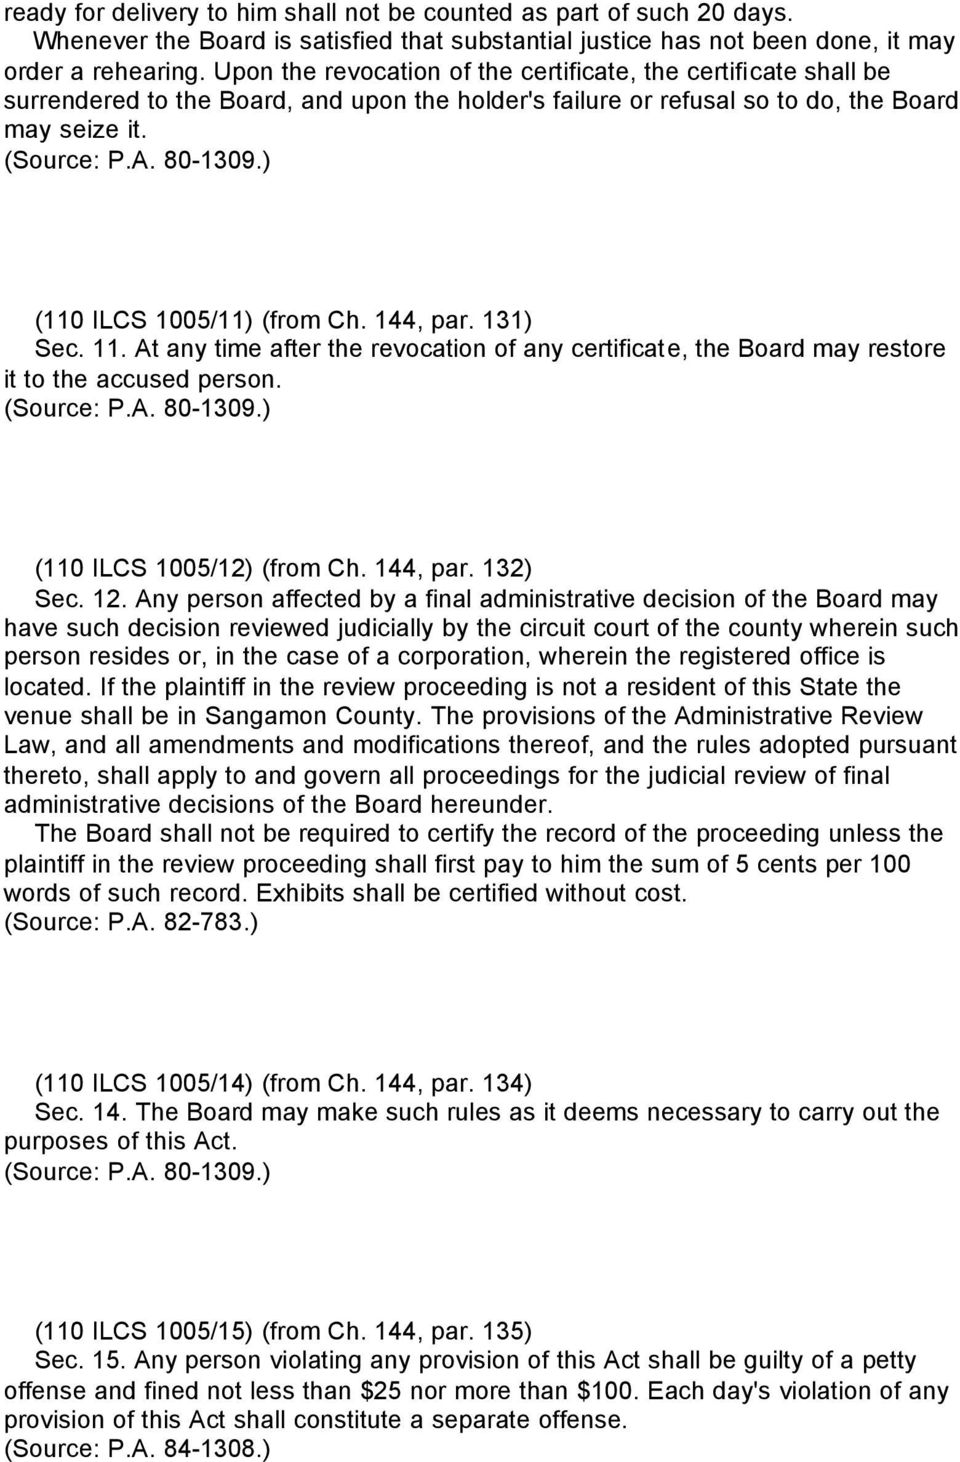 144, par. 131) Sec. 11. At any time after the revocation of any certificate, the Board may restore it to the accused person. (110 ILCS 1005/12) (from Ch. 144, par. 132) Sec. 12.